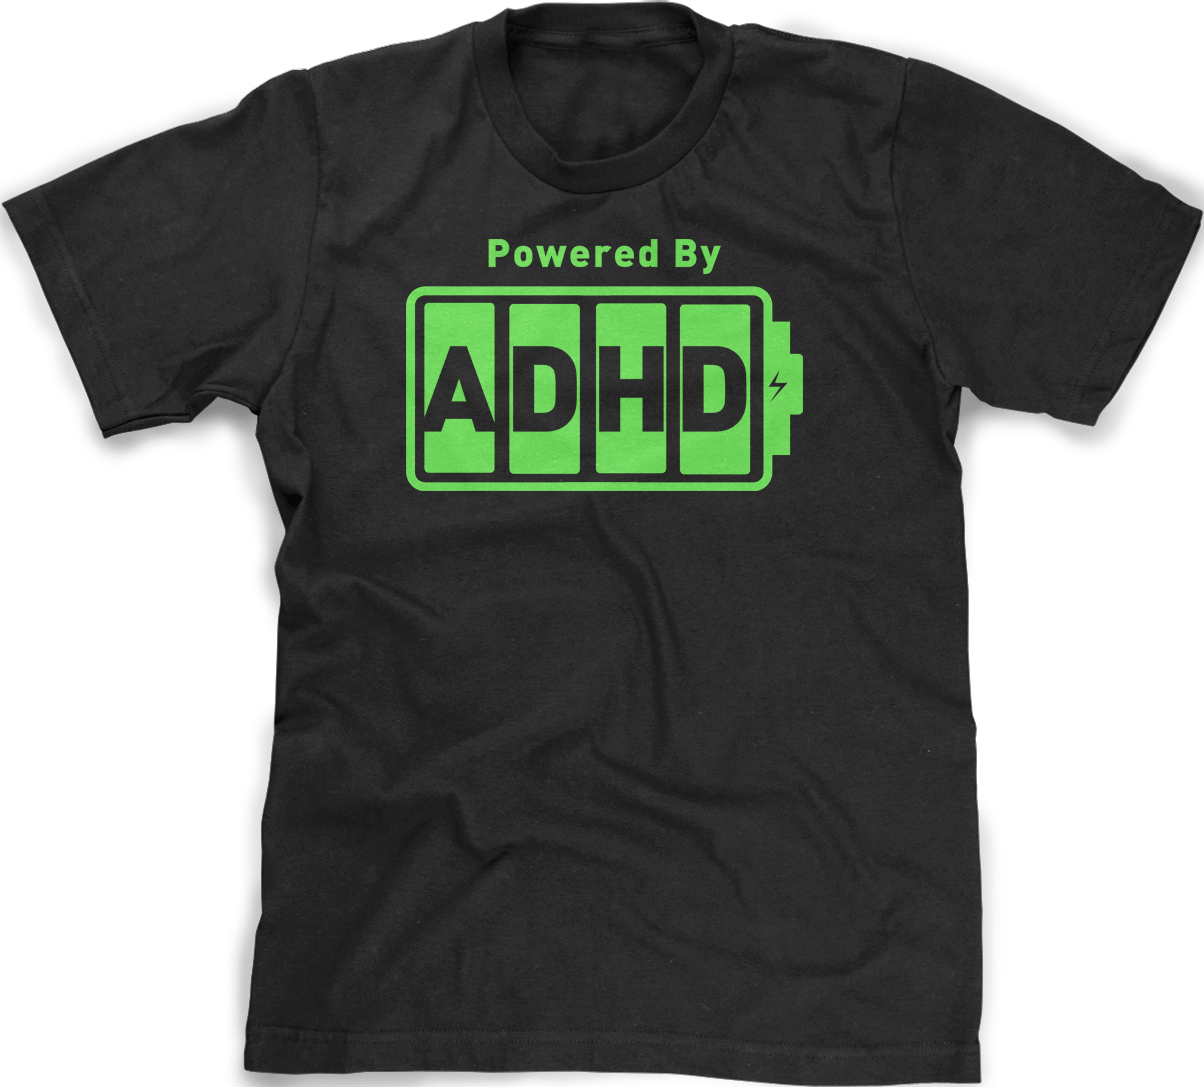 Crazy Dog Tshirts Youth Battery Powered ADHD T Shirt funny energy shirt for kids at Sears.com